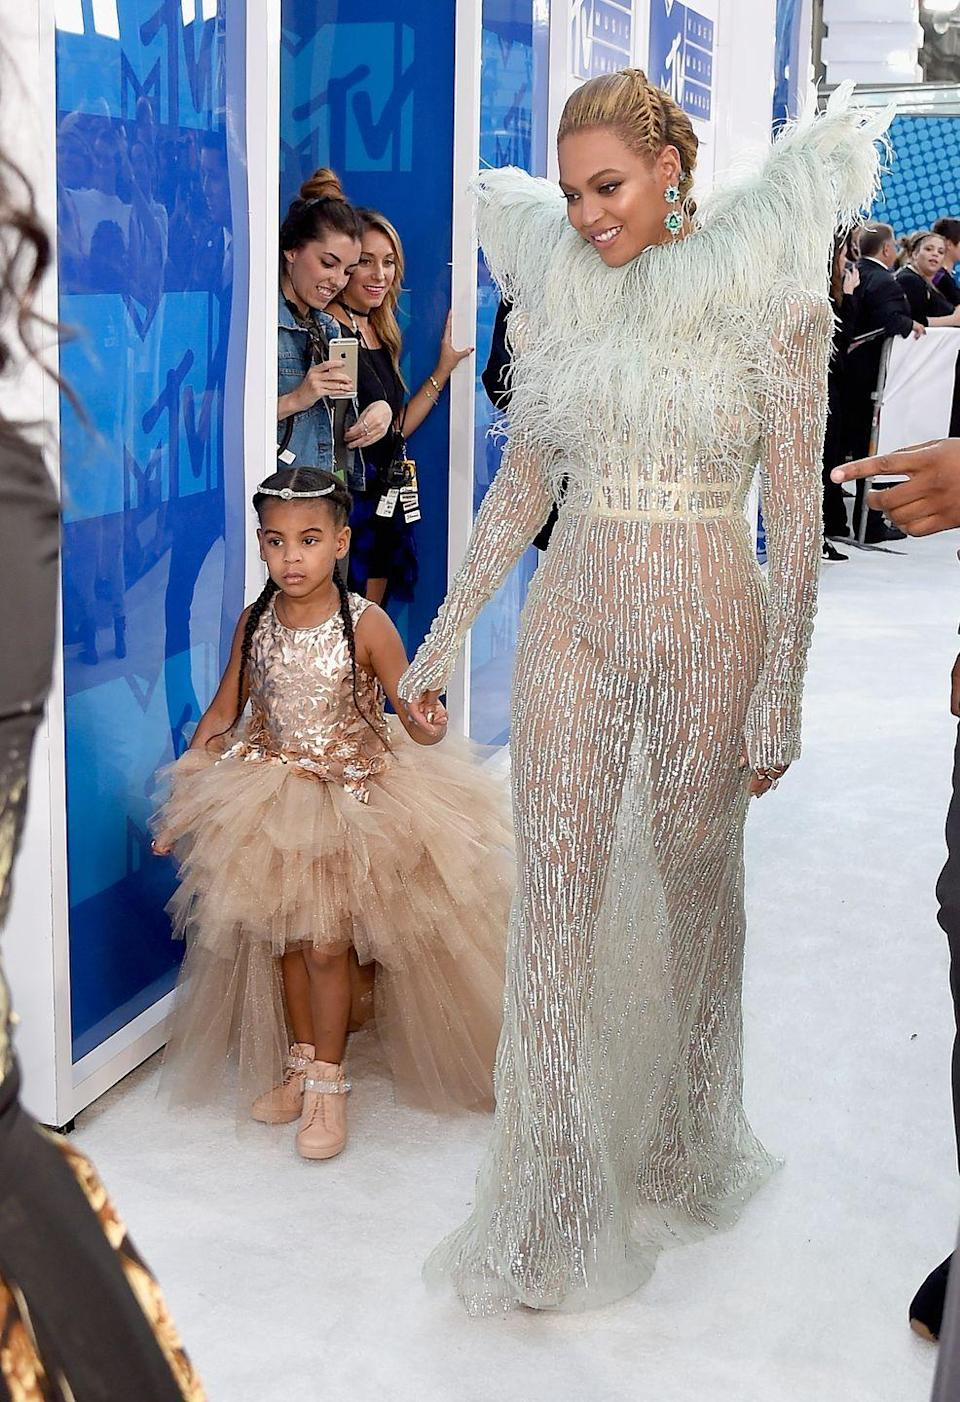 <p>Beyoncé and Blue Ivy arrived to the VMAs in 2016 with sparkly outfits that were bound to impress. Beyoncés added feathers and Blue Ivy's extra tulle differentiate the outfits while still allowing them to be the coolest mother-daughter duo. </p>